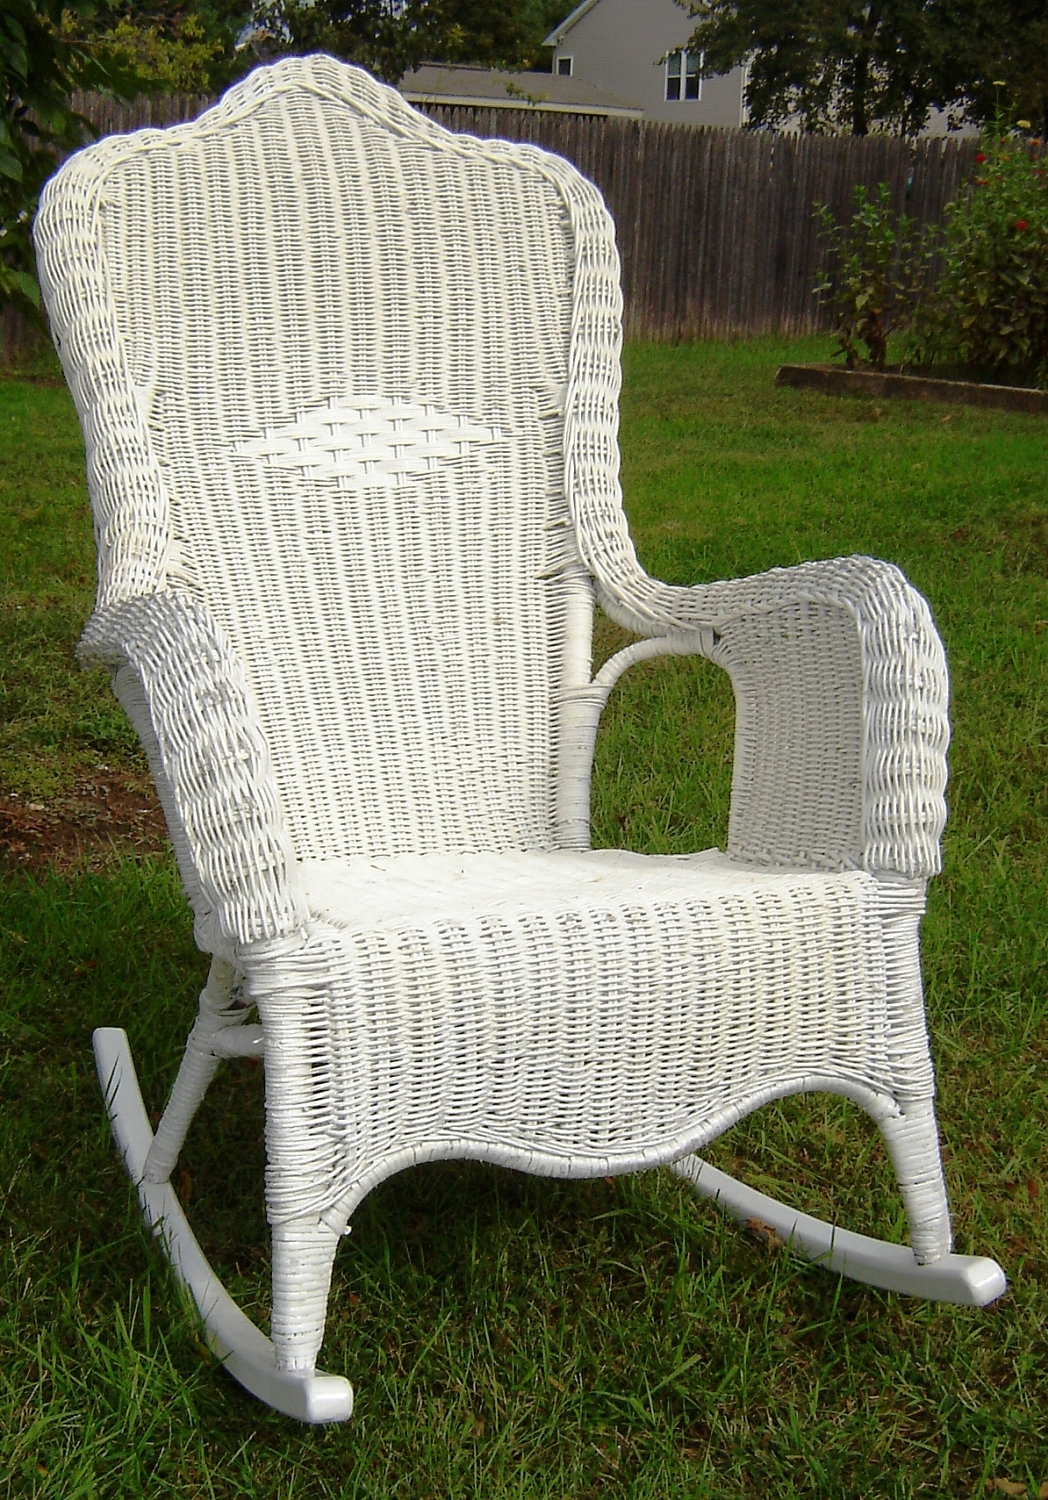 Outdoor Wicker Rocking Chair Set – Outdoor Designs For Newest Outdoor Wicker Rocking Chairs (View 14 of 20)